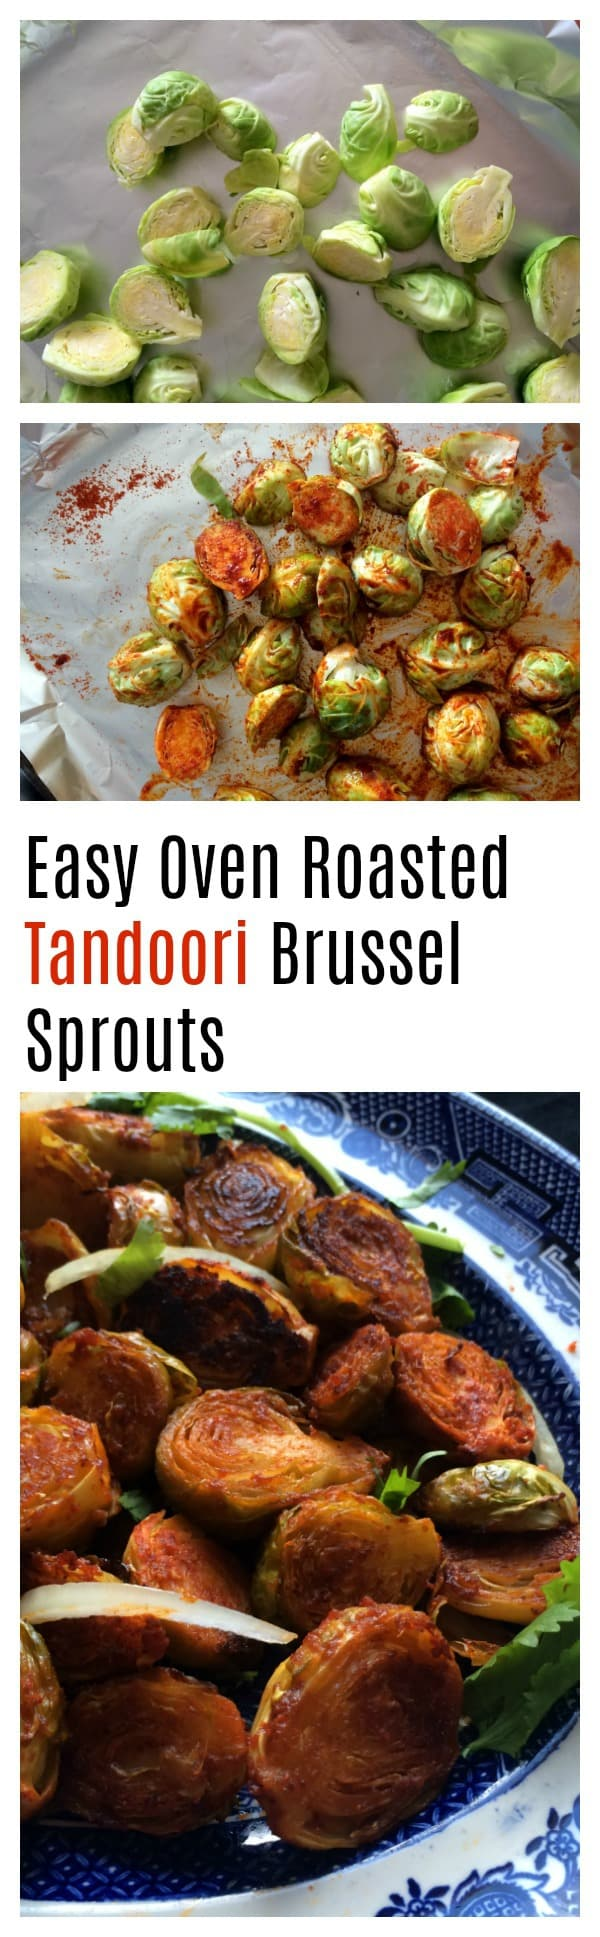 spicy roasted brussel sprouts